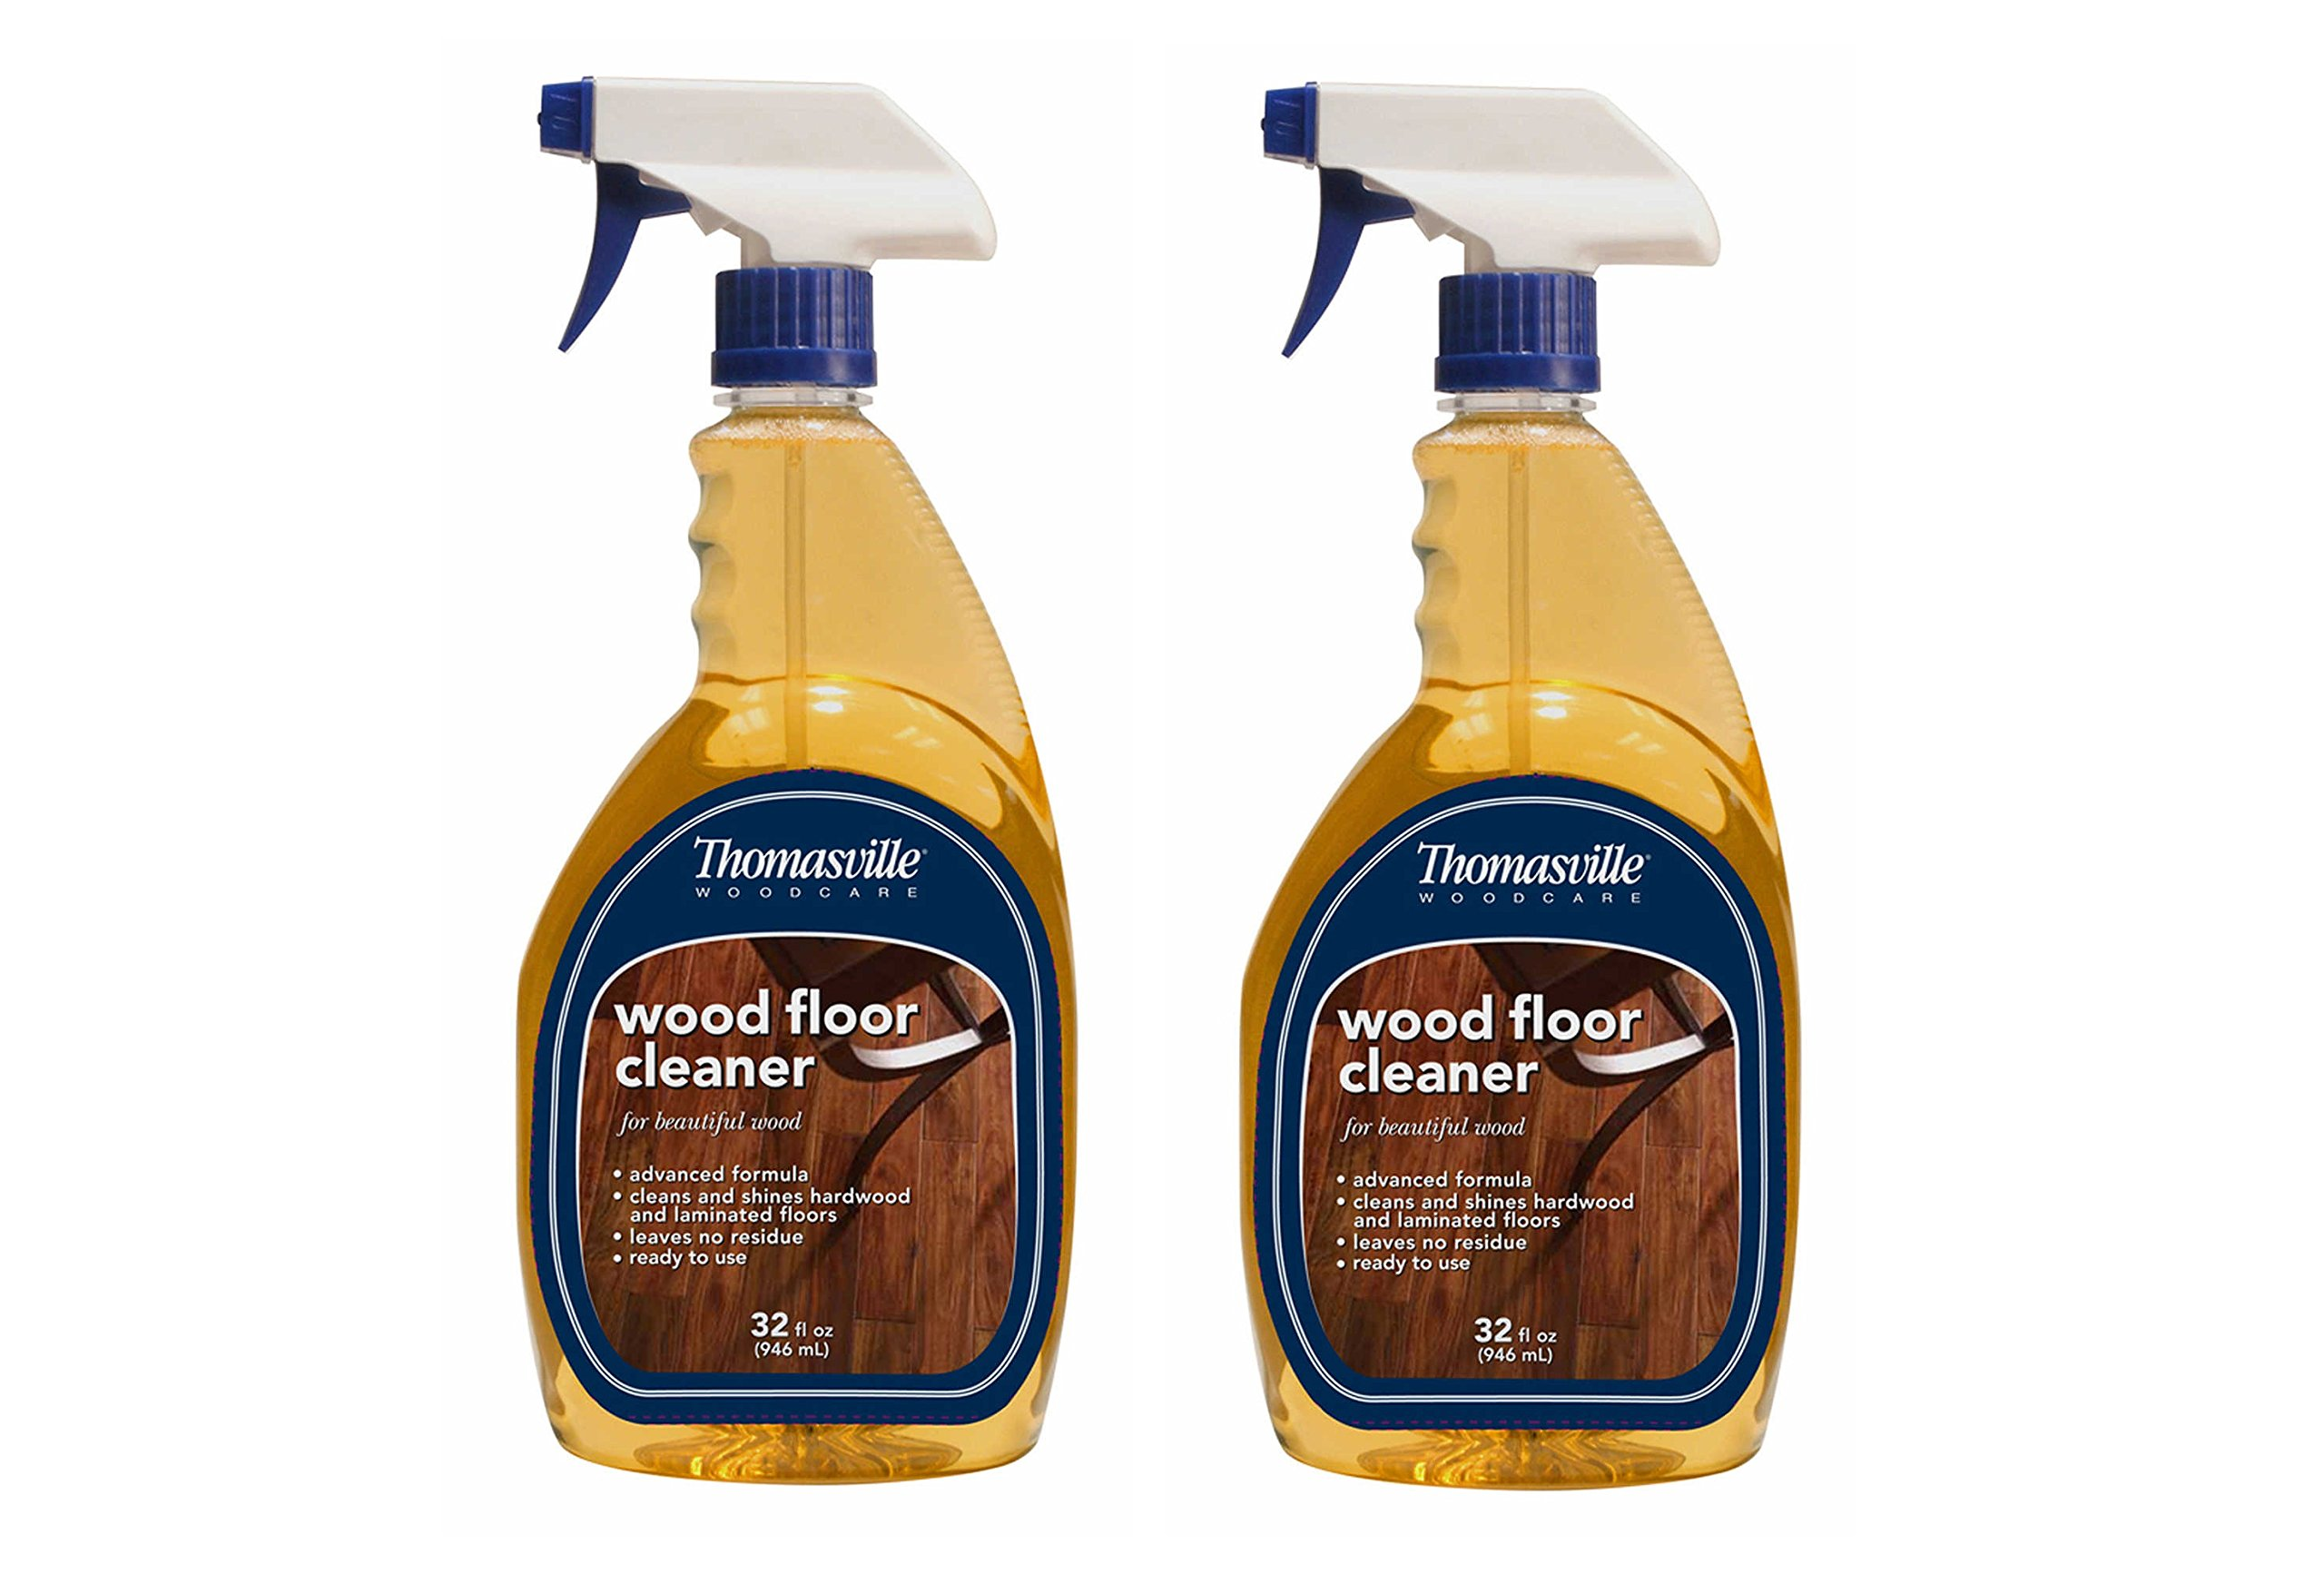 Thomasville Wood Floor Cleaner 32 Oz Spray Bottle Dries without streaking (Pack of 2) Made in USA